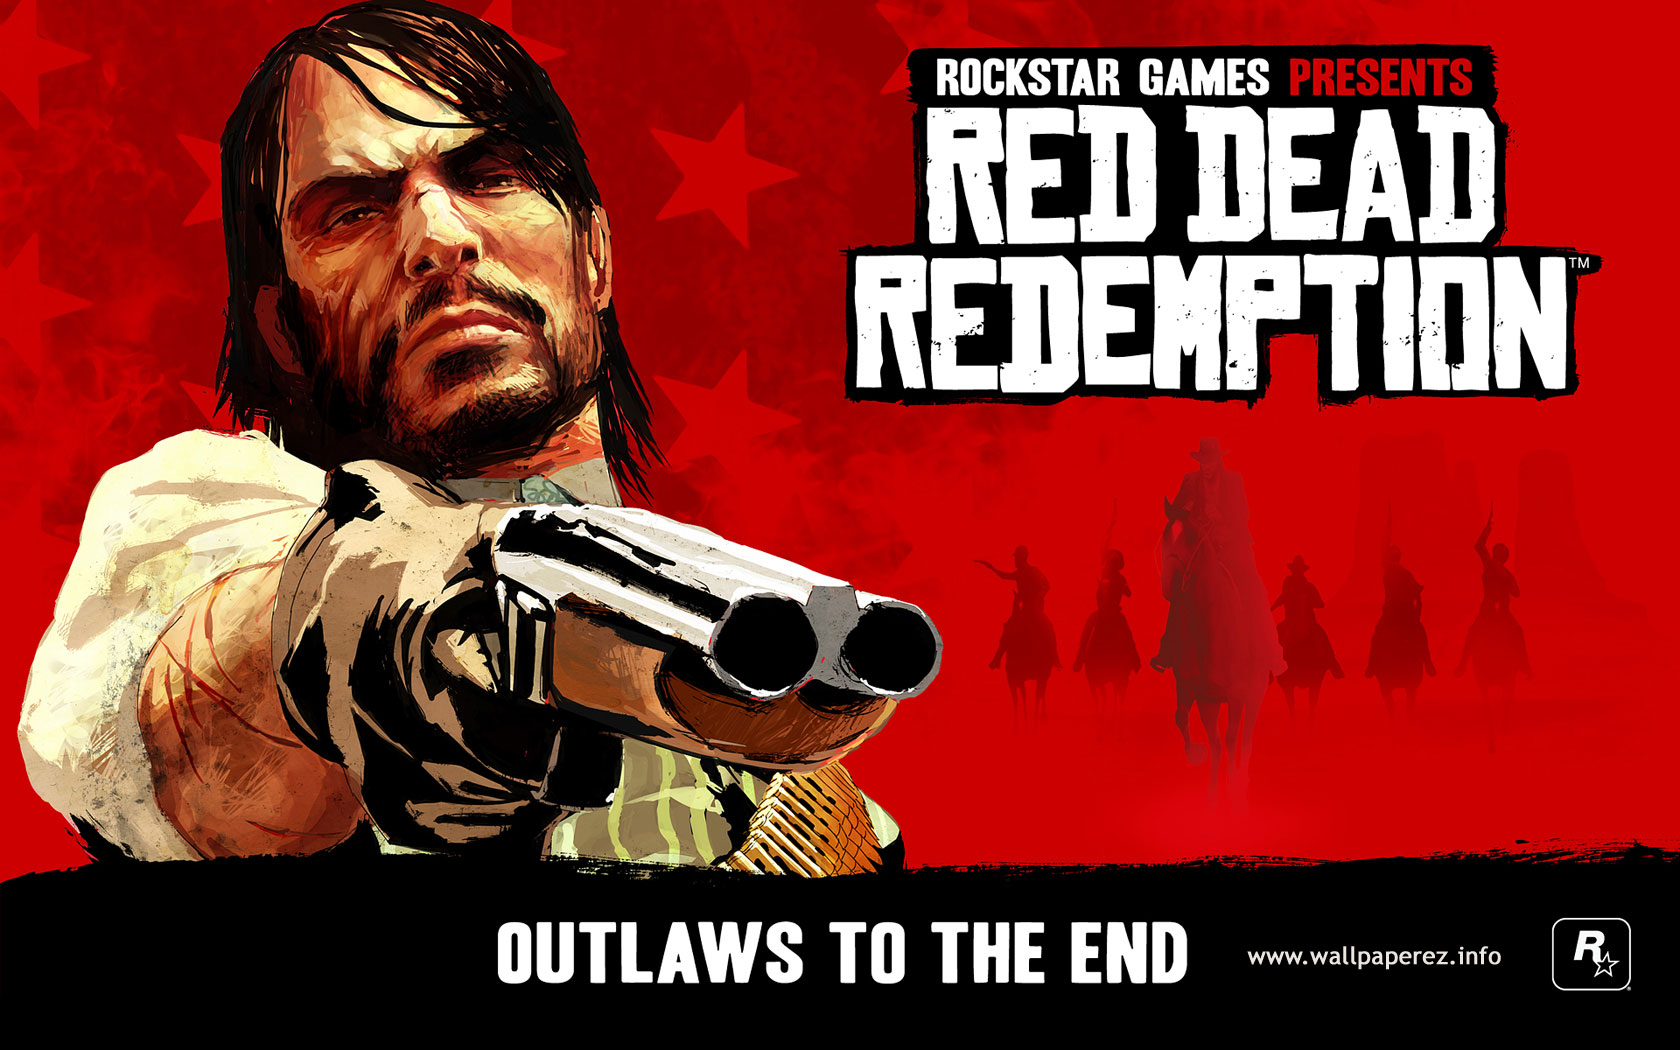 Rockstar insider confirms sequel to 'Red Dead Redemption,' to be revealed on 2015 E3? : Trending News : Venture Capital Post